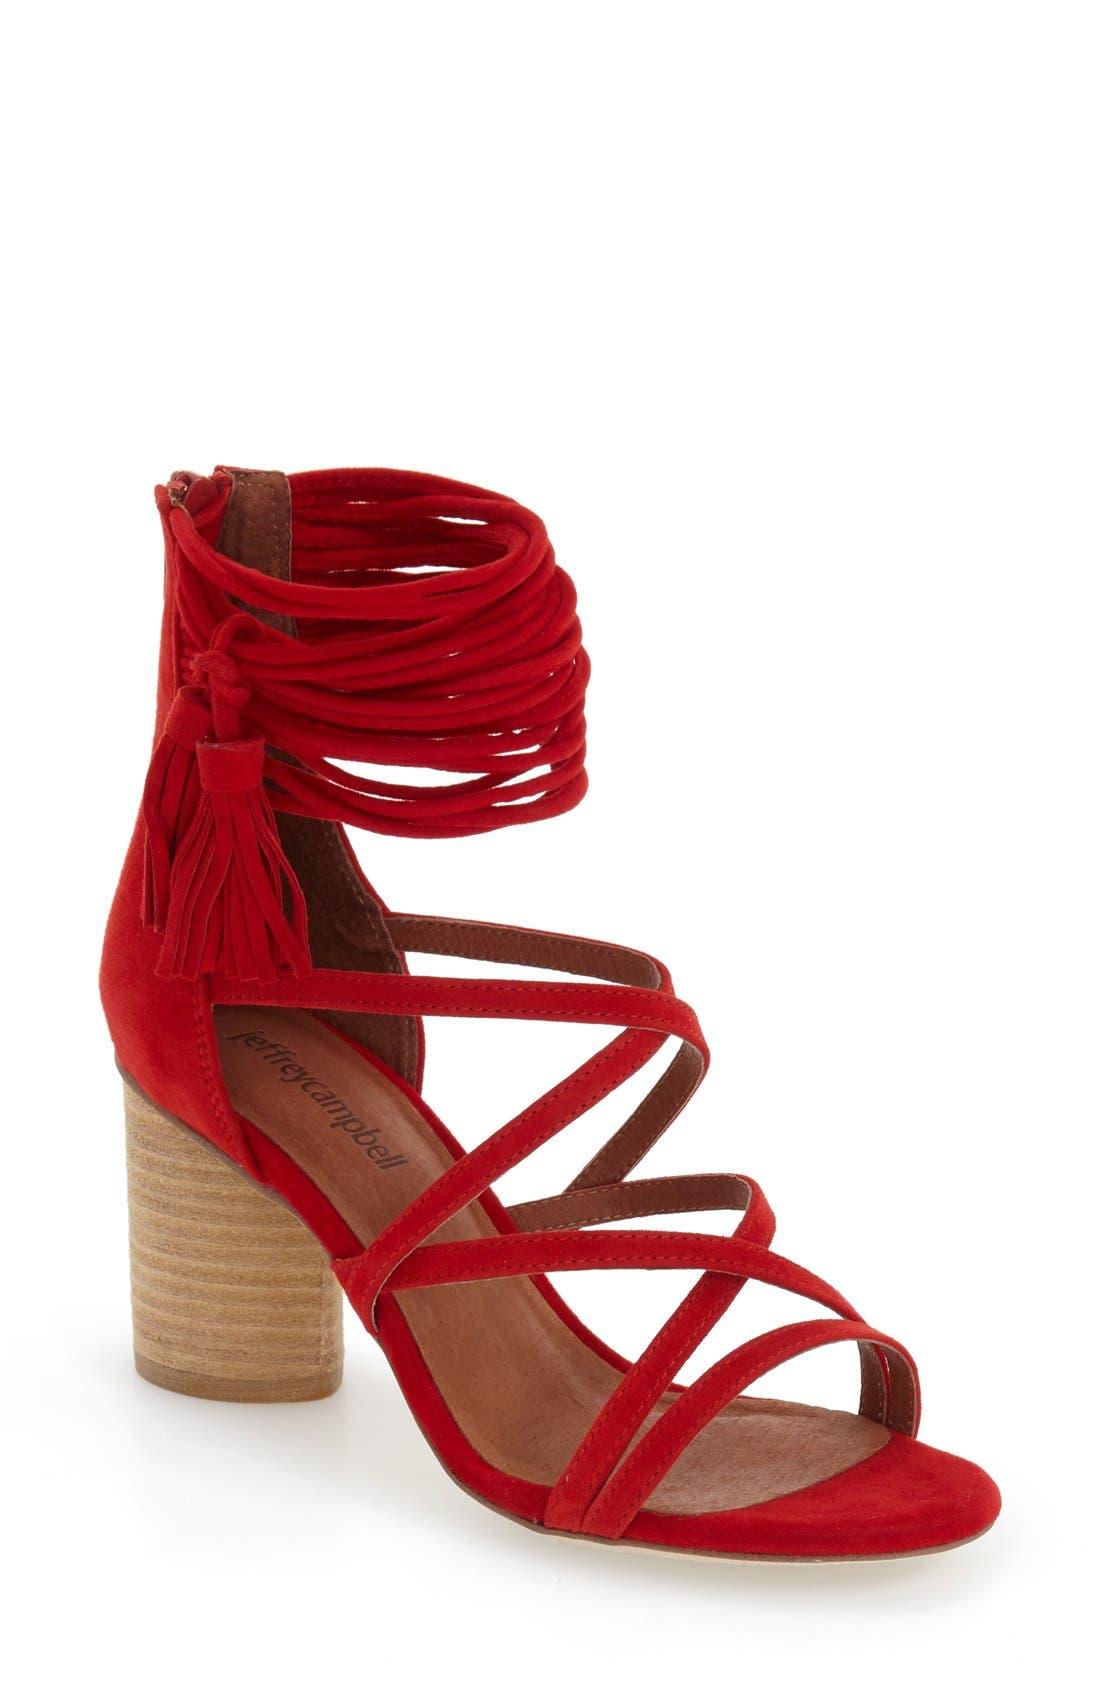 'Despina' Strappy Sandal,                         Main,                         color, Red Suede